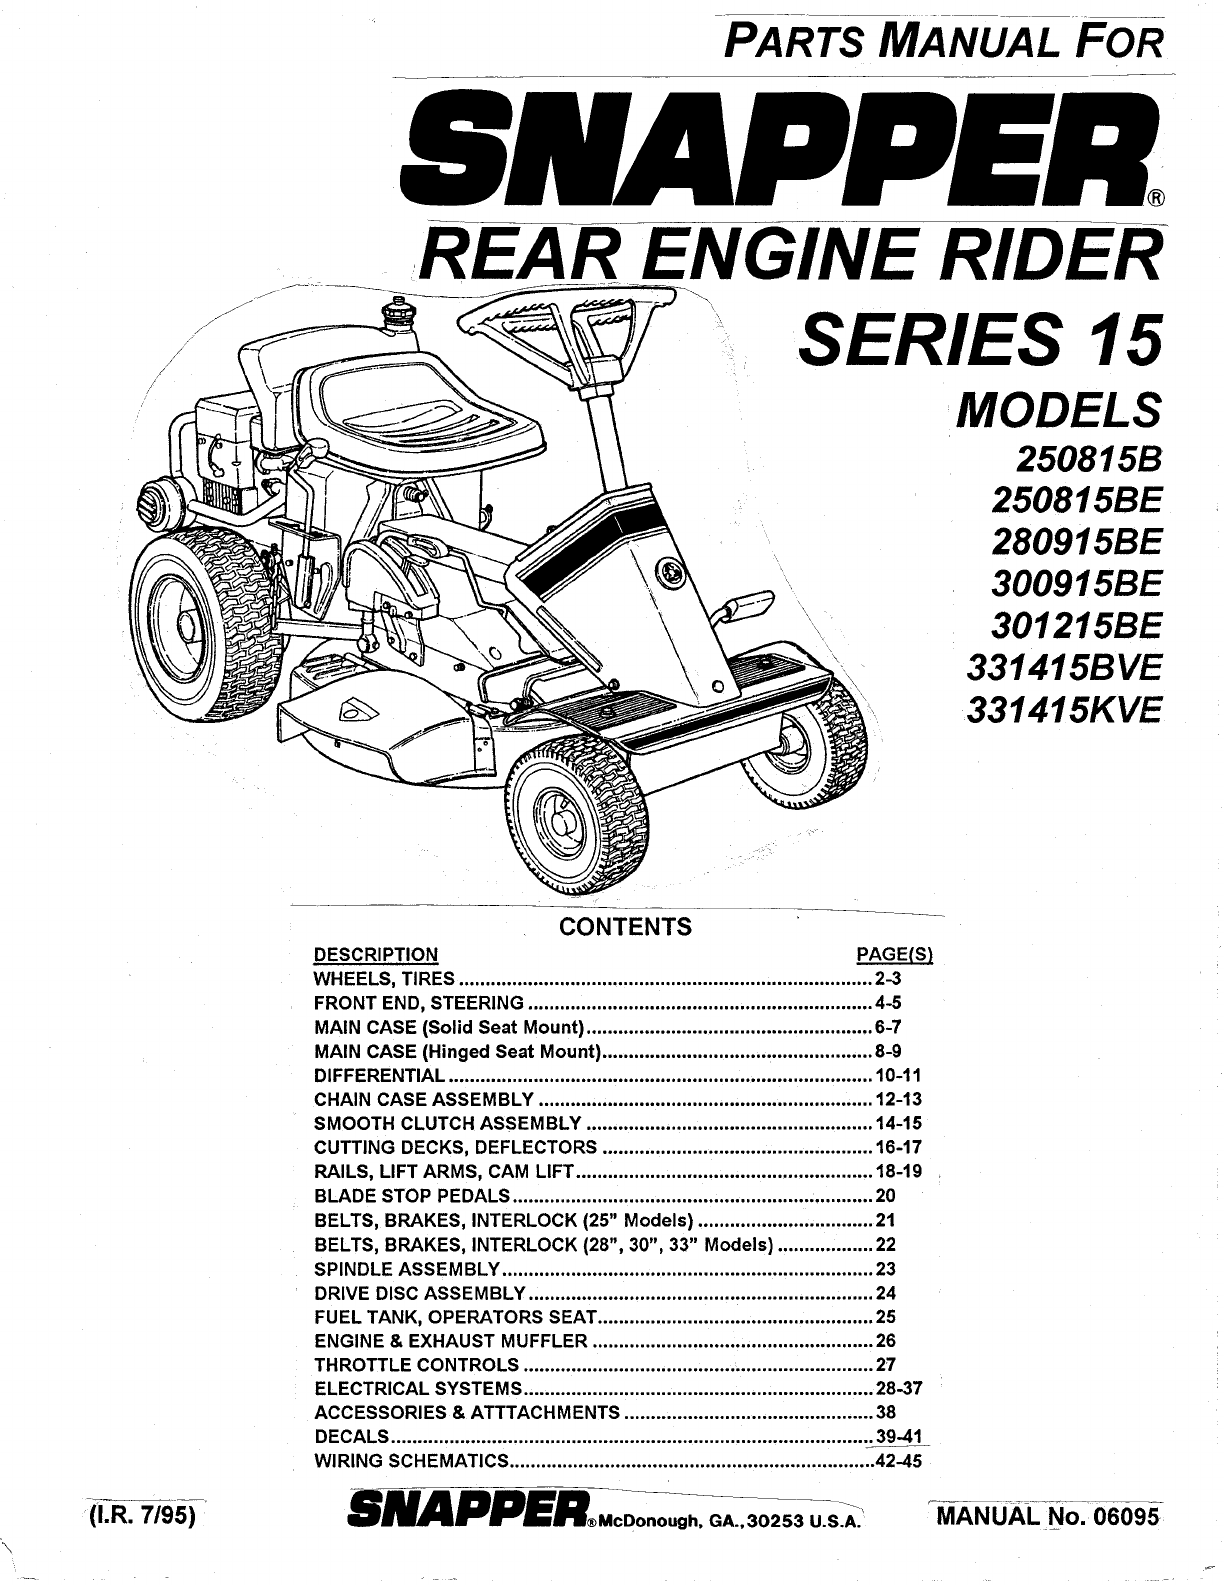 272586 Scotts 1642h Hydrostatic Issue additionally T13979715 Oil leak john deere lx 277 as well John Deere L120 Parts besides John Deere Belt Diagram STX38 further John Deere BCarburetor Parts. on john deere d lawn tractor parts html